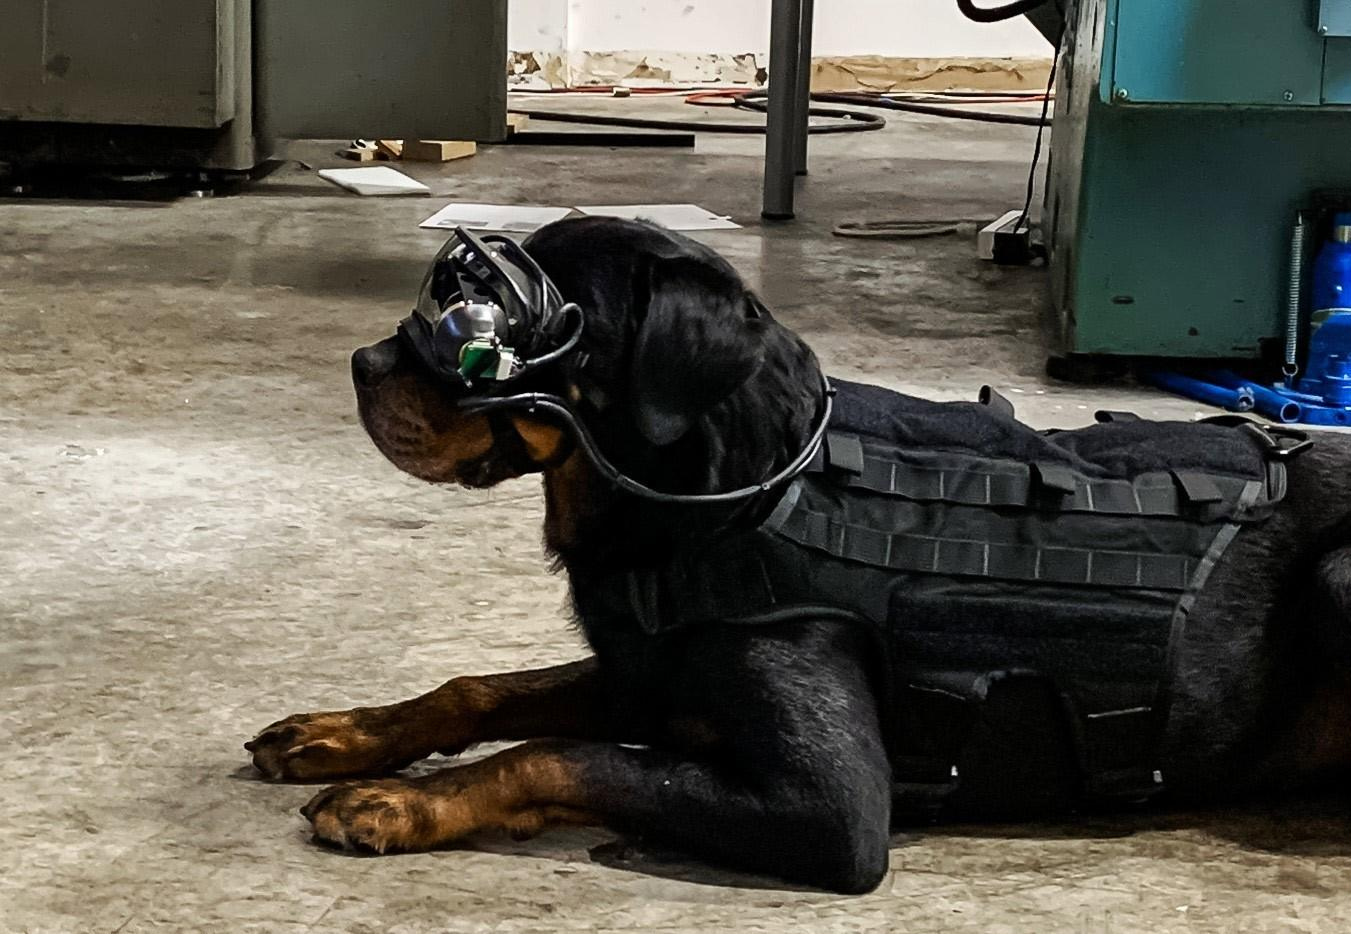 The AR goggles are designed to overlay visual cues onto the animal's field of vision allowing handlers to command the dogs remotely